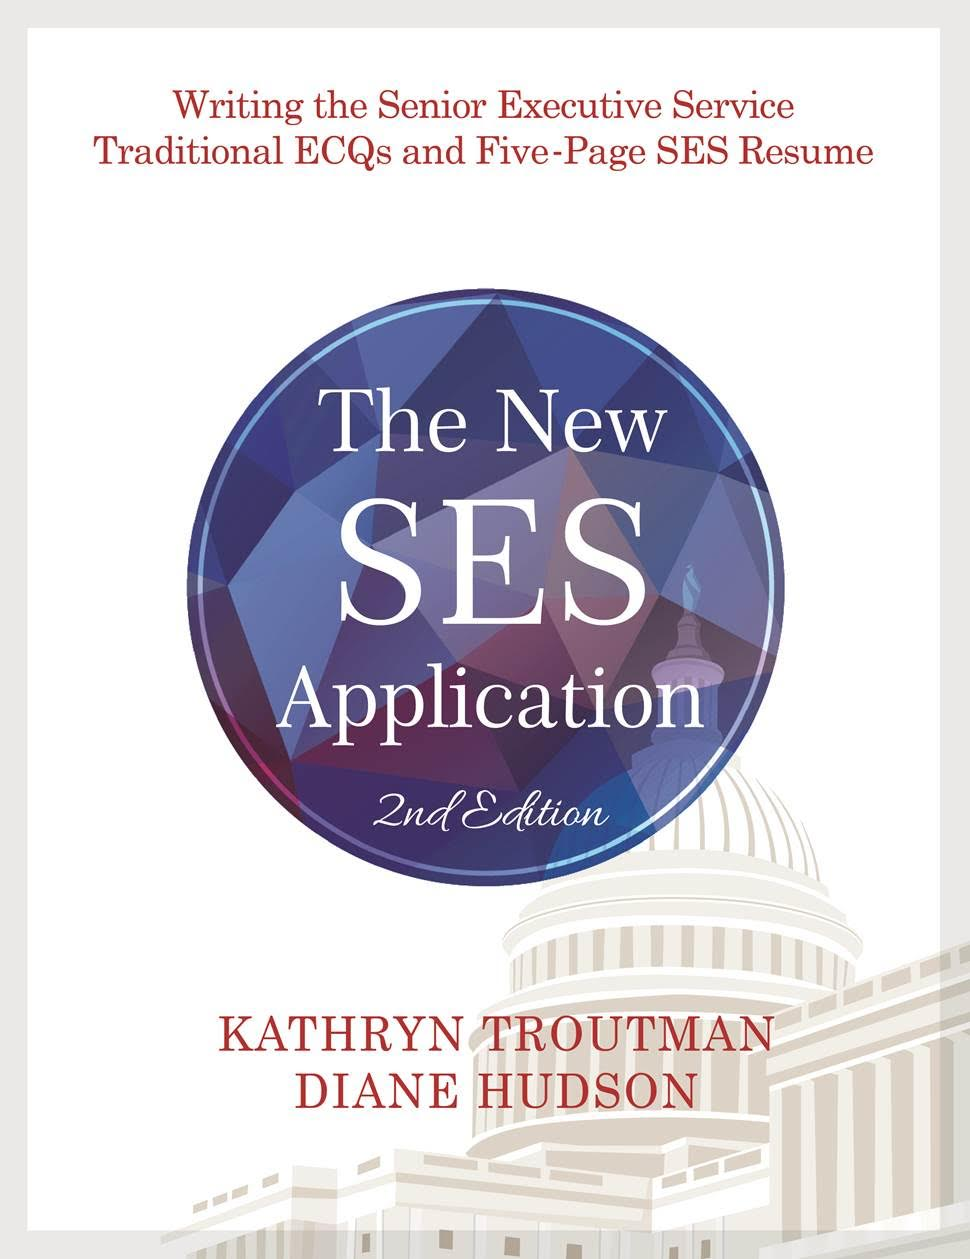 How to Write SES ECQs & Applications | Guide Book